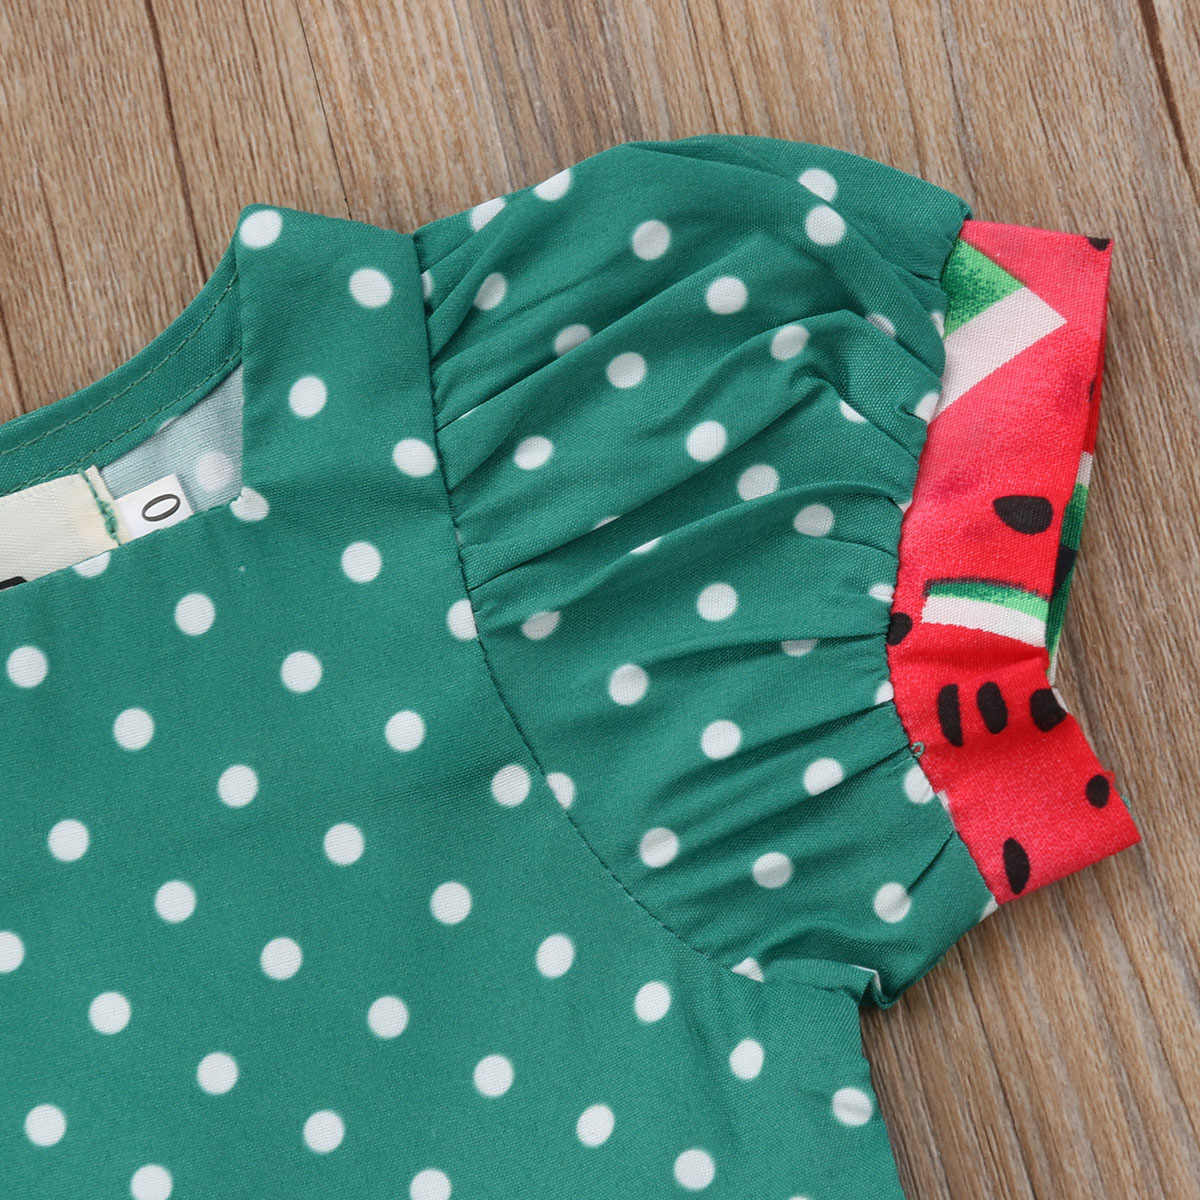 31a603b16bcf Detail Feedback Questions about Green Red Toddler Infant Kids Baby ...